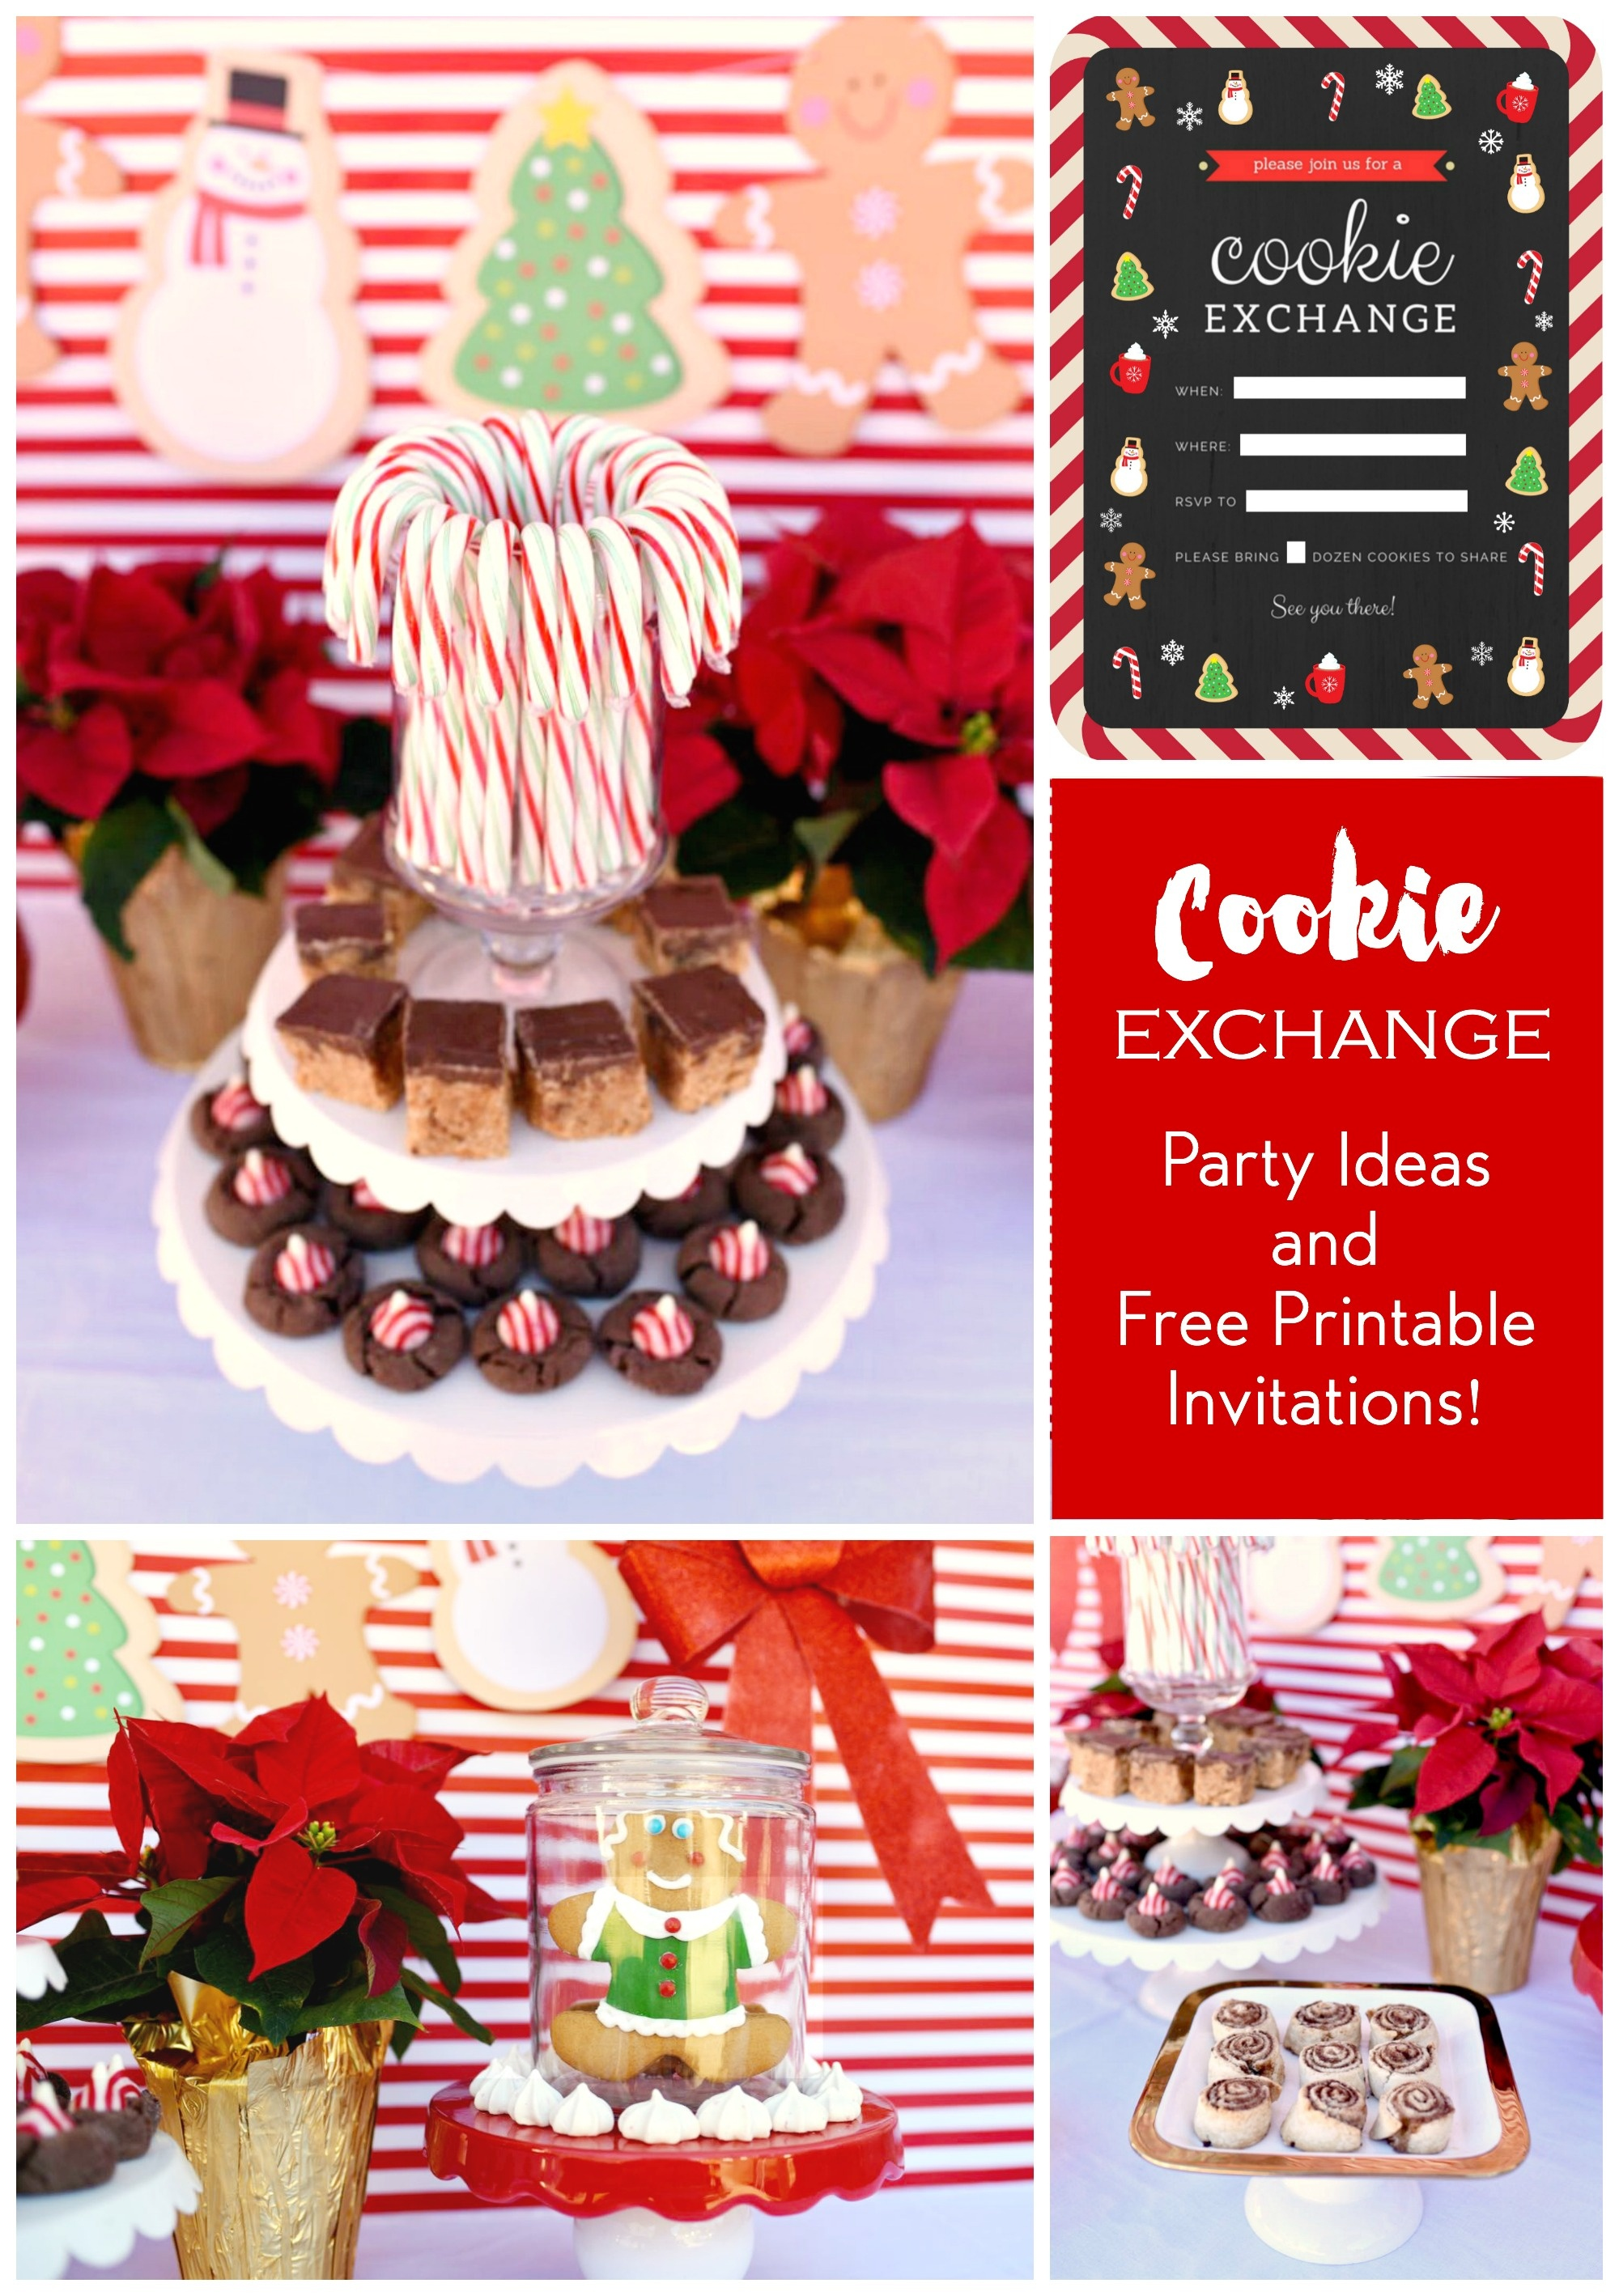 Cookie Exchange Party + Free Party Invitations - Make Life Lovely - Free Printable Cookie Decorating Invitations